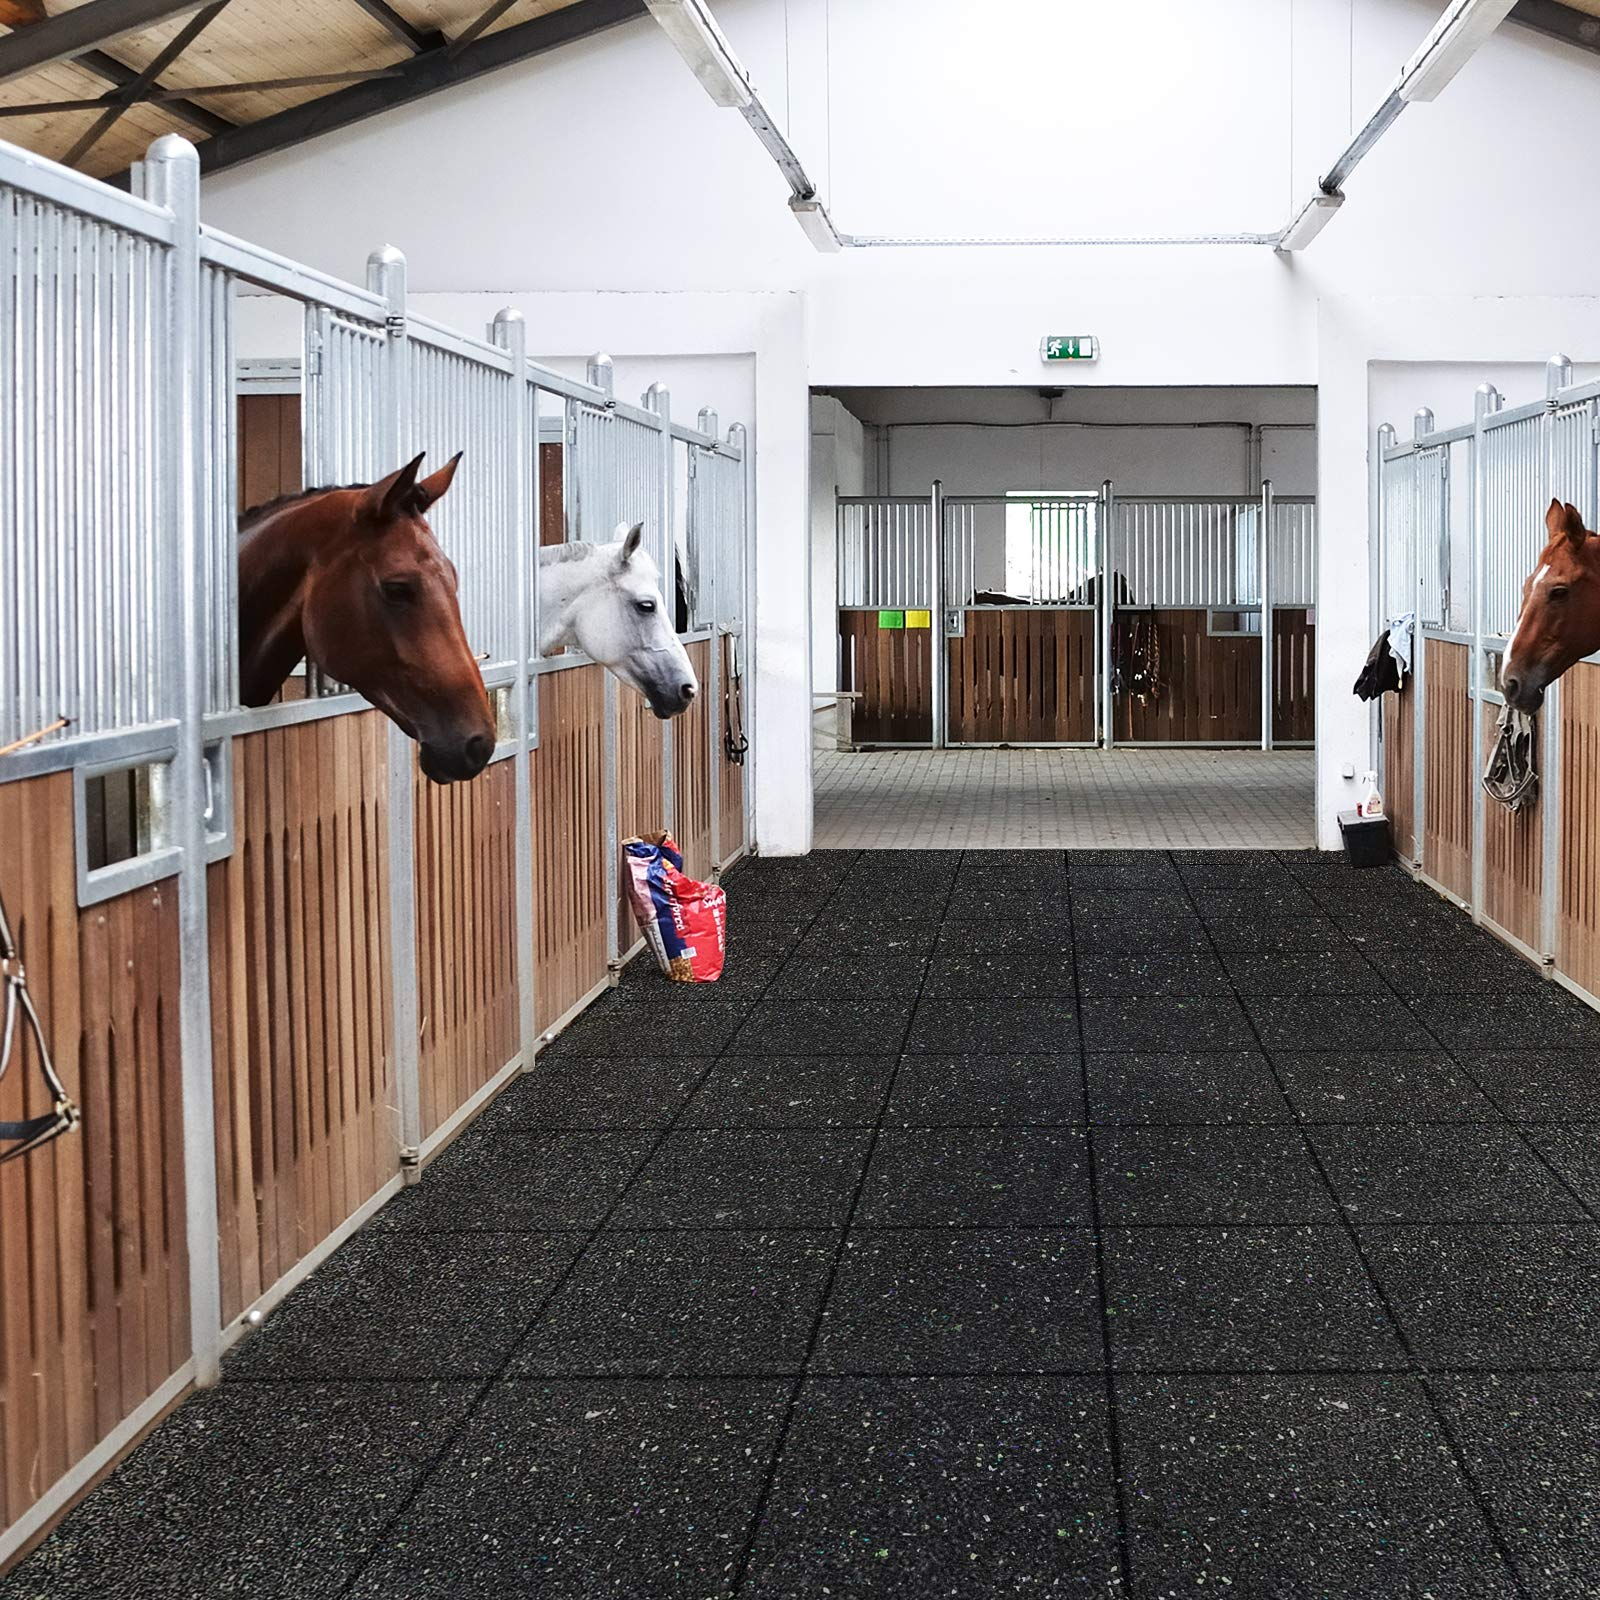 Ergocell Recycled Rubber Floor Mat – Shock Absorbent Gym Mat Flooring & Horse Stall Mat | Three Thicknesses, Multiple Sizes | 3/8'' - 2' x 1' by Ergocell (Image #5)